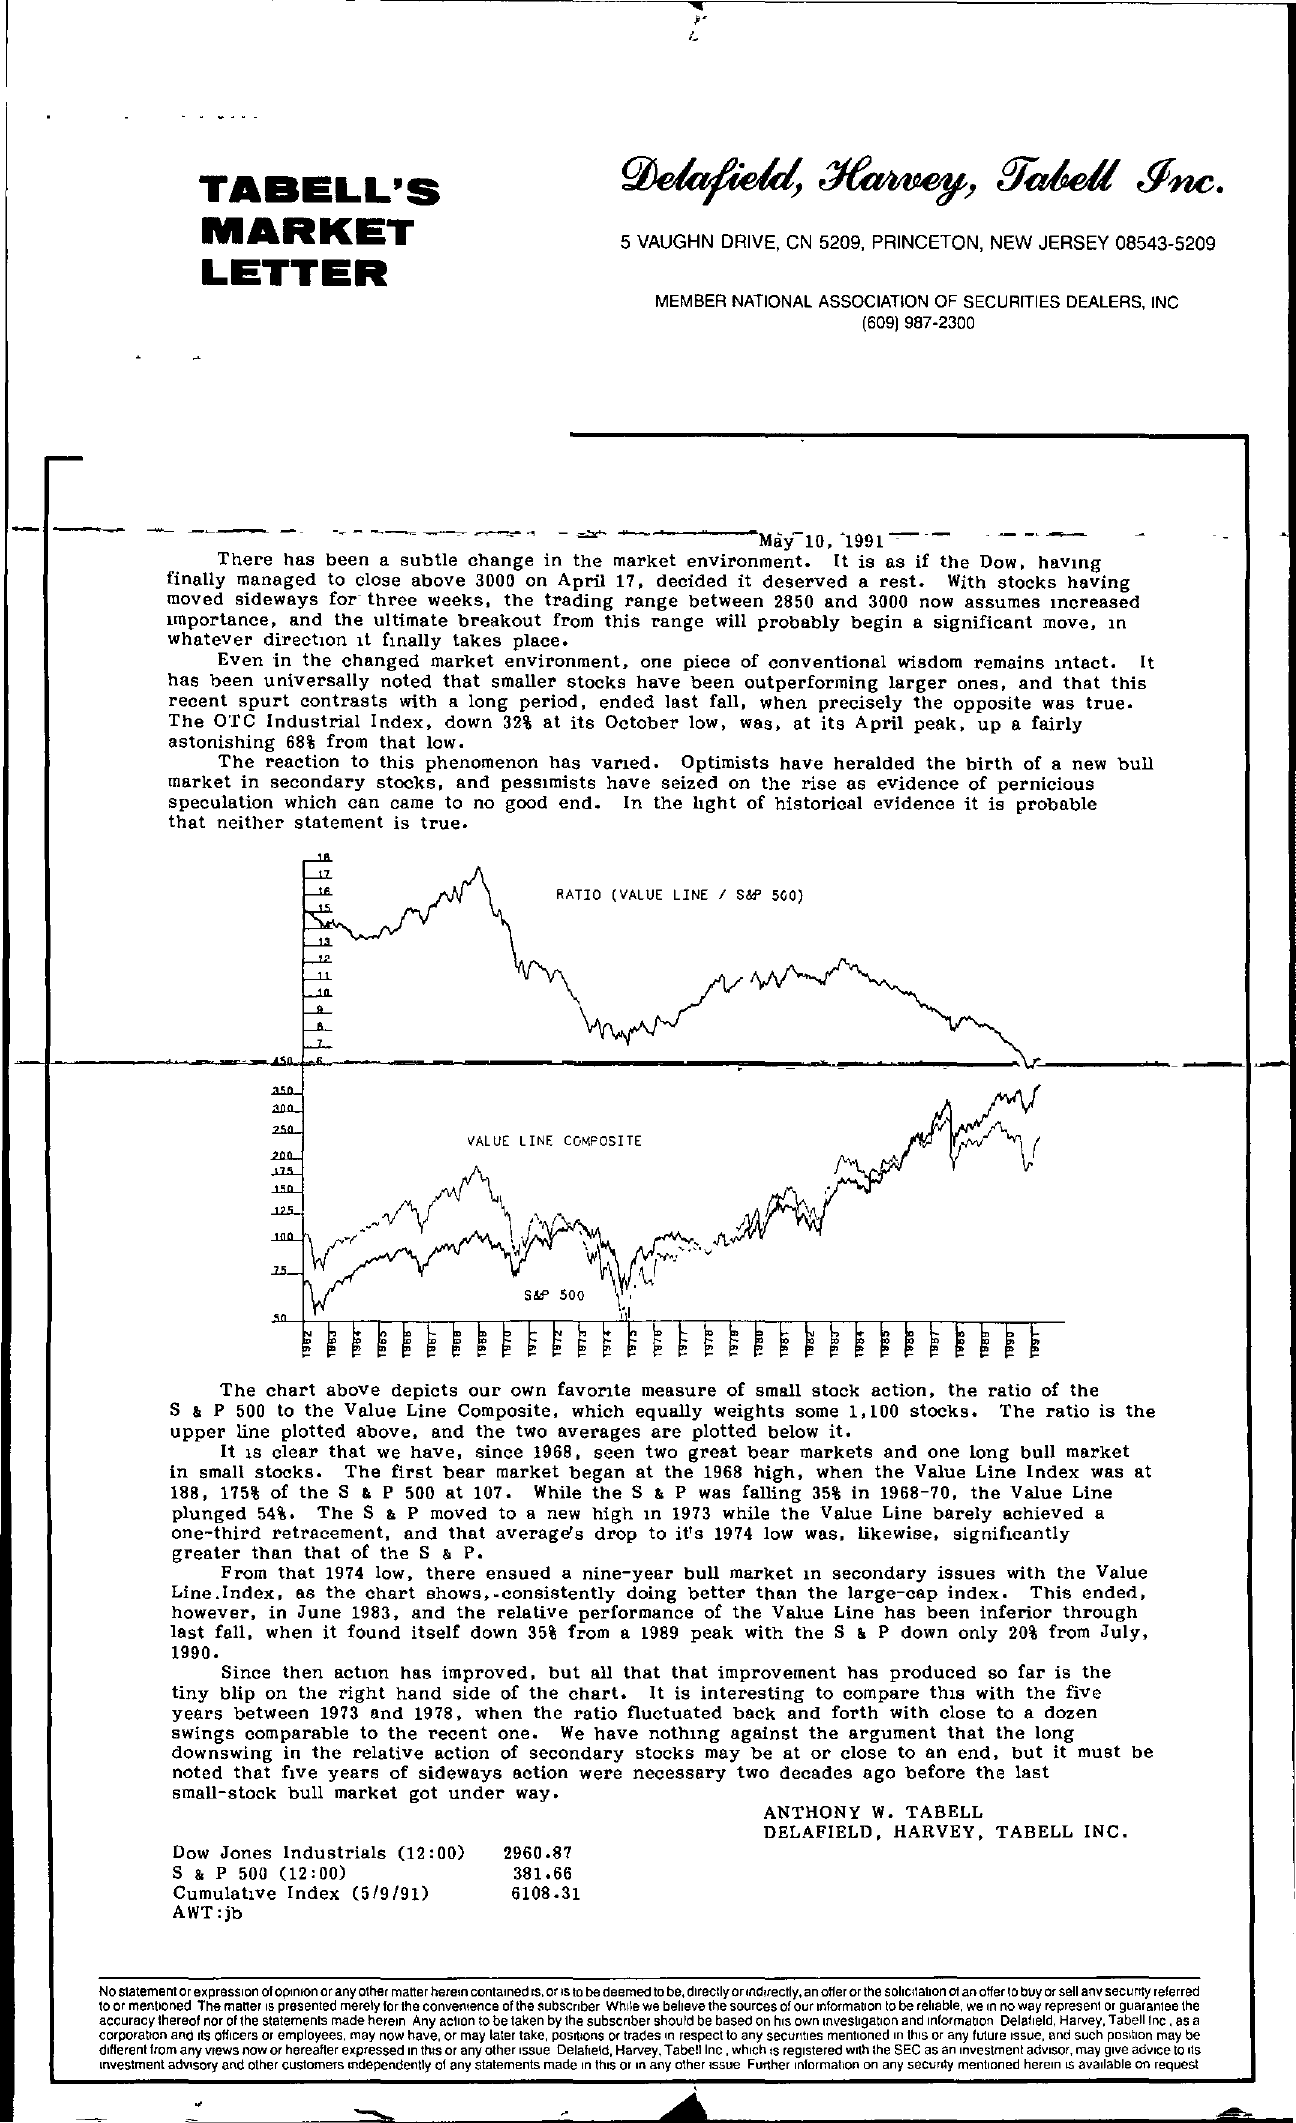 Tabell's Market Letter - May 10, 1991